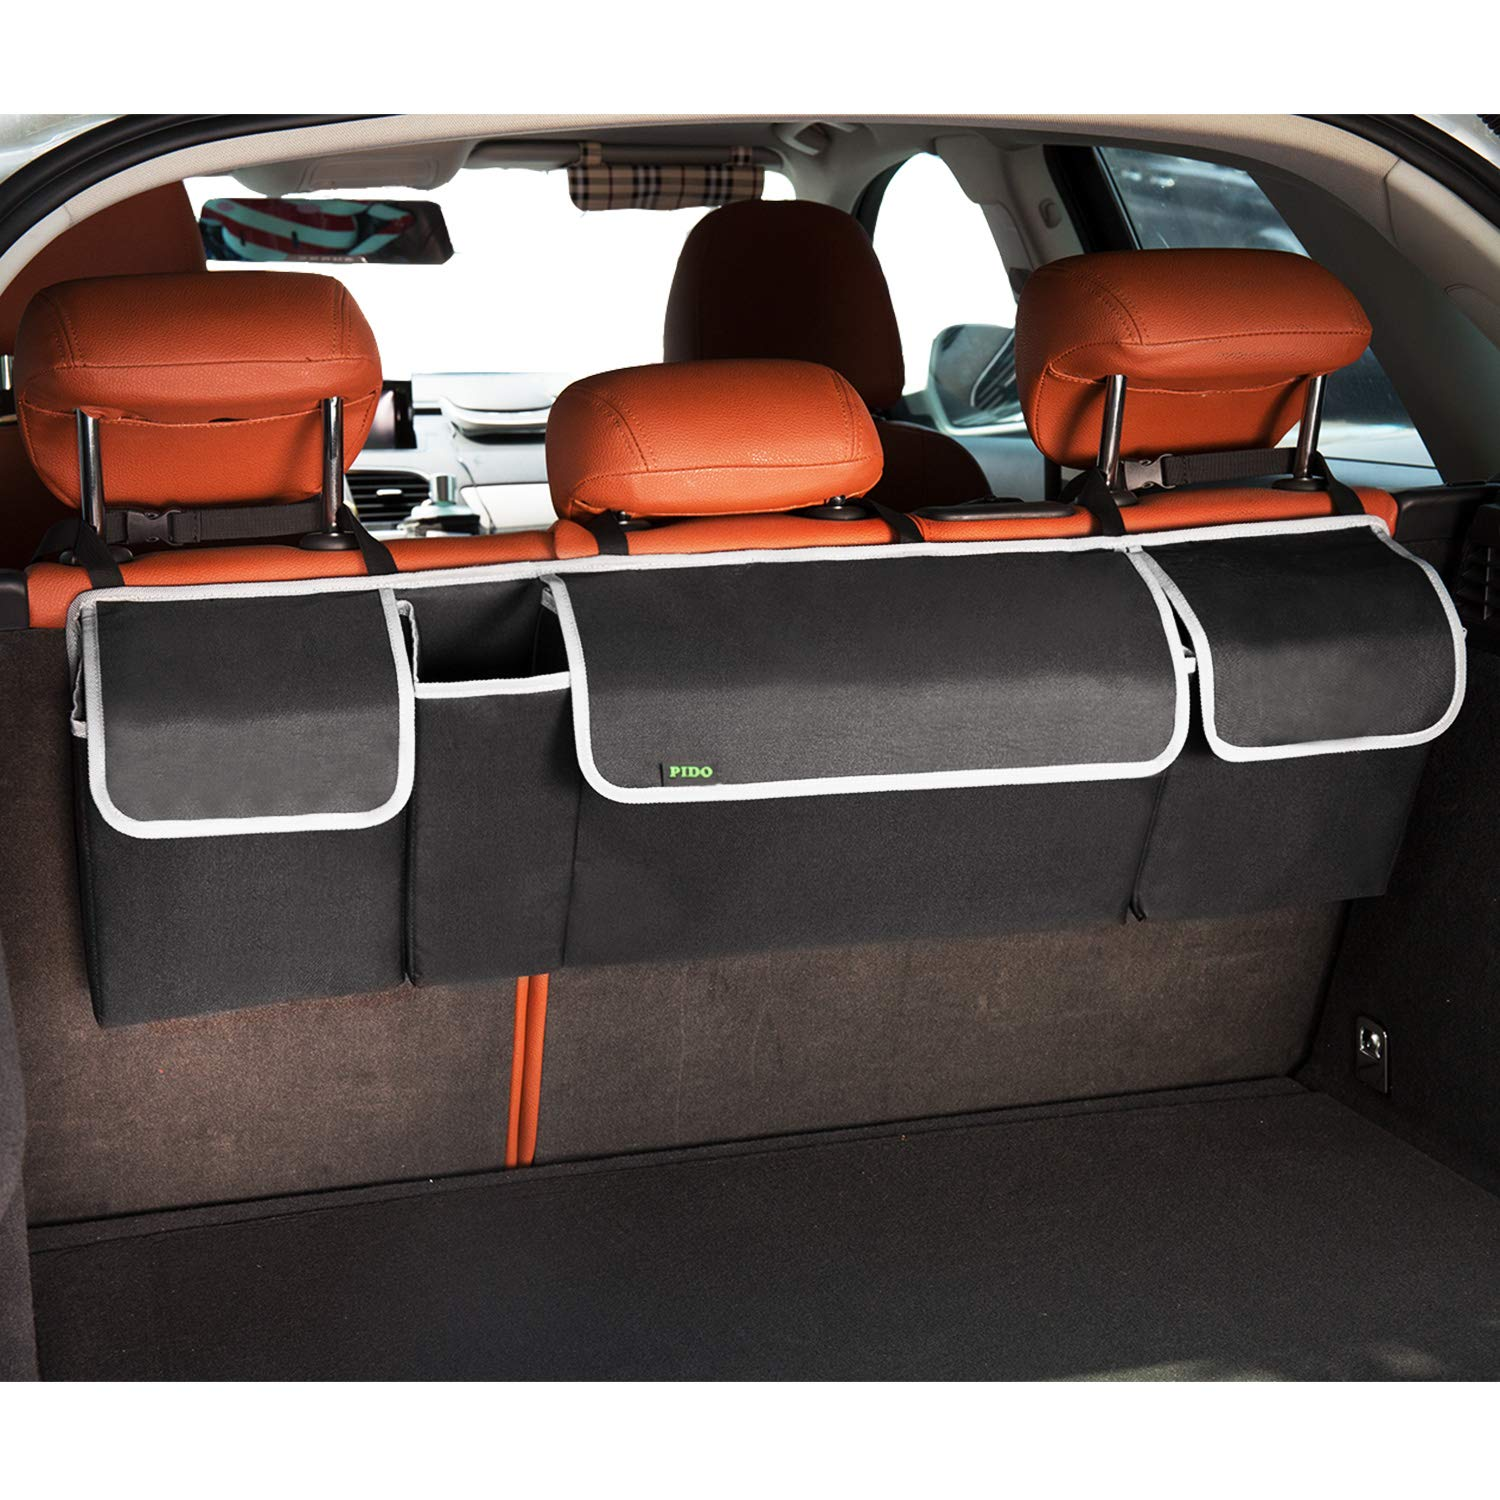 PIDO Backseat Trunk Organizer, Auto Hanging Seat Back Storage Organizer for SUV and Many Vehicles – Free Your Trunk Space